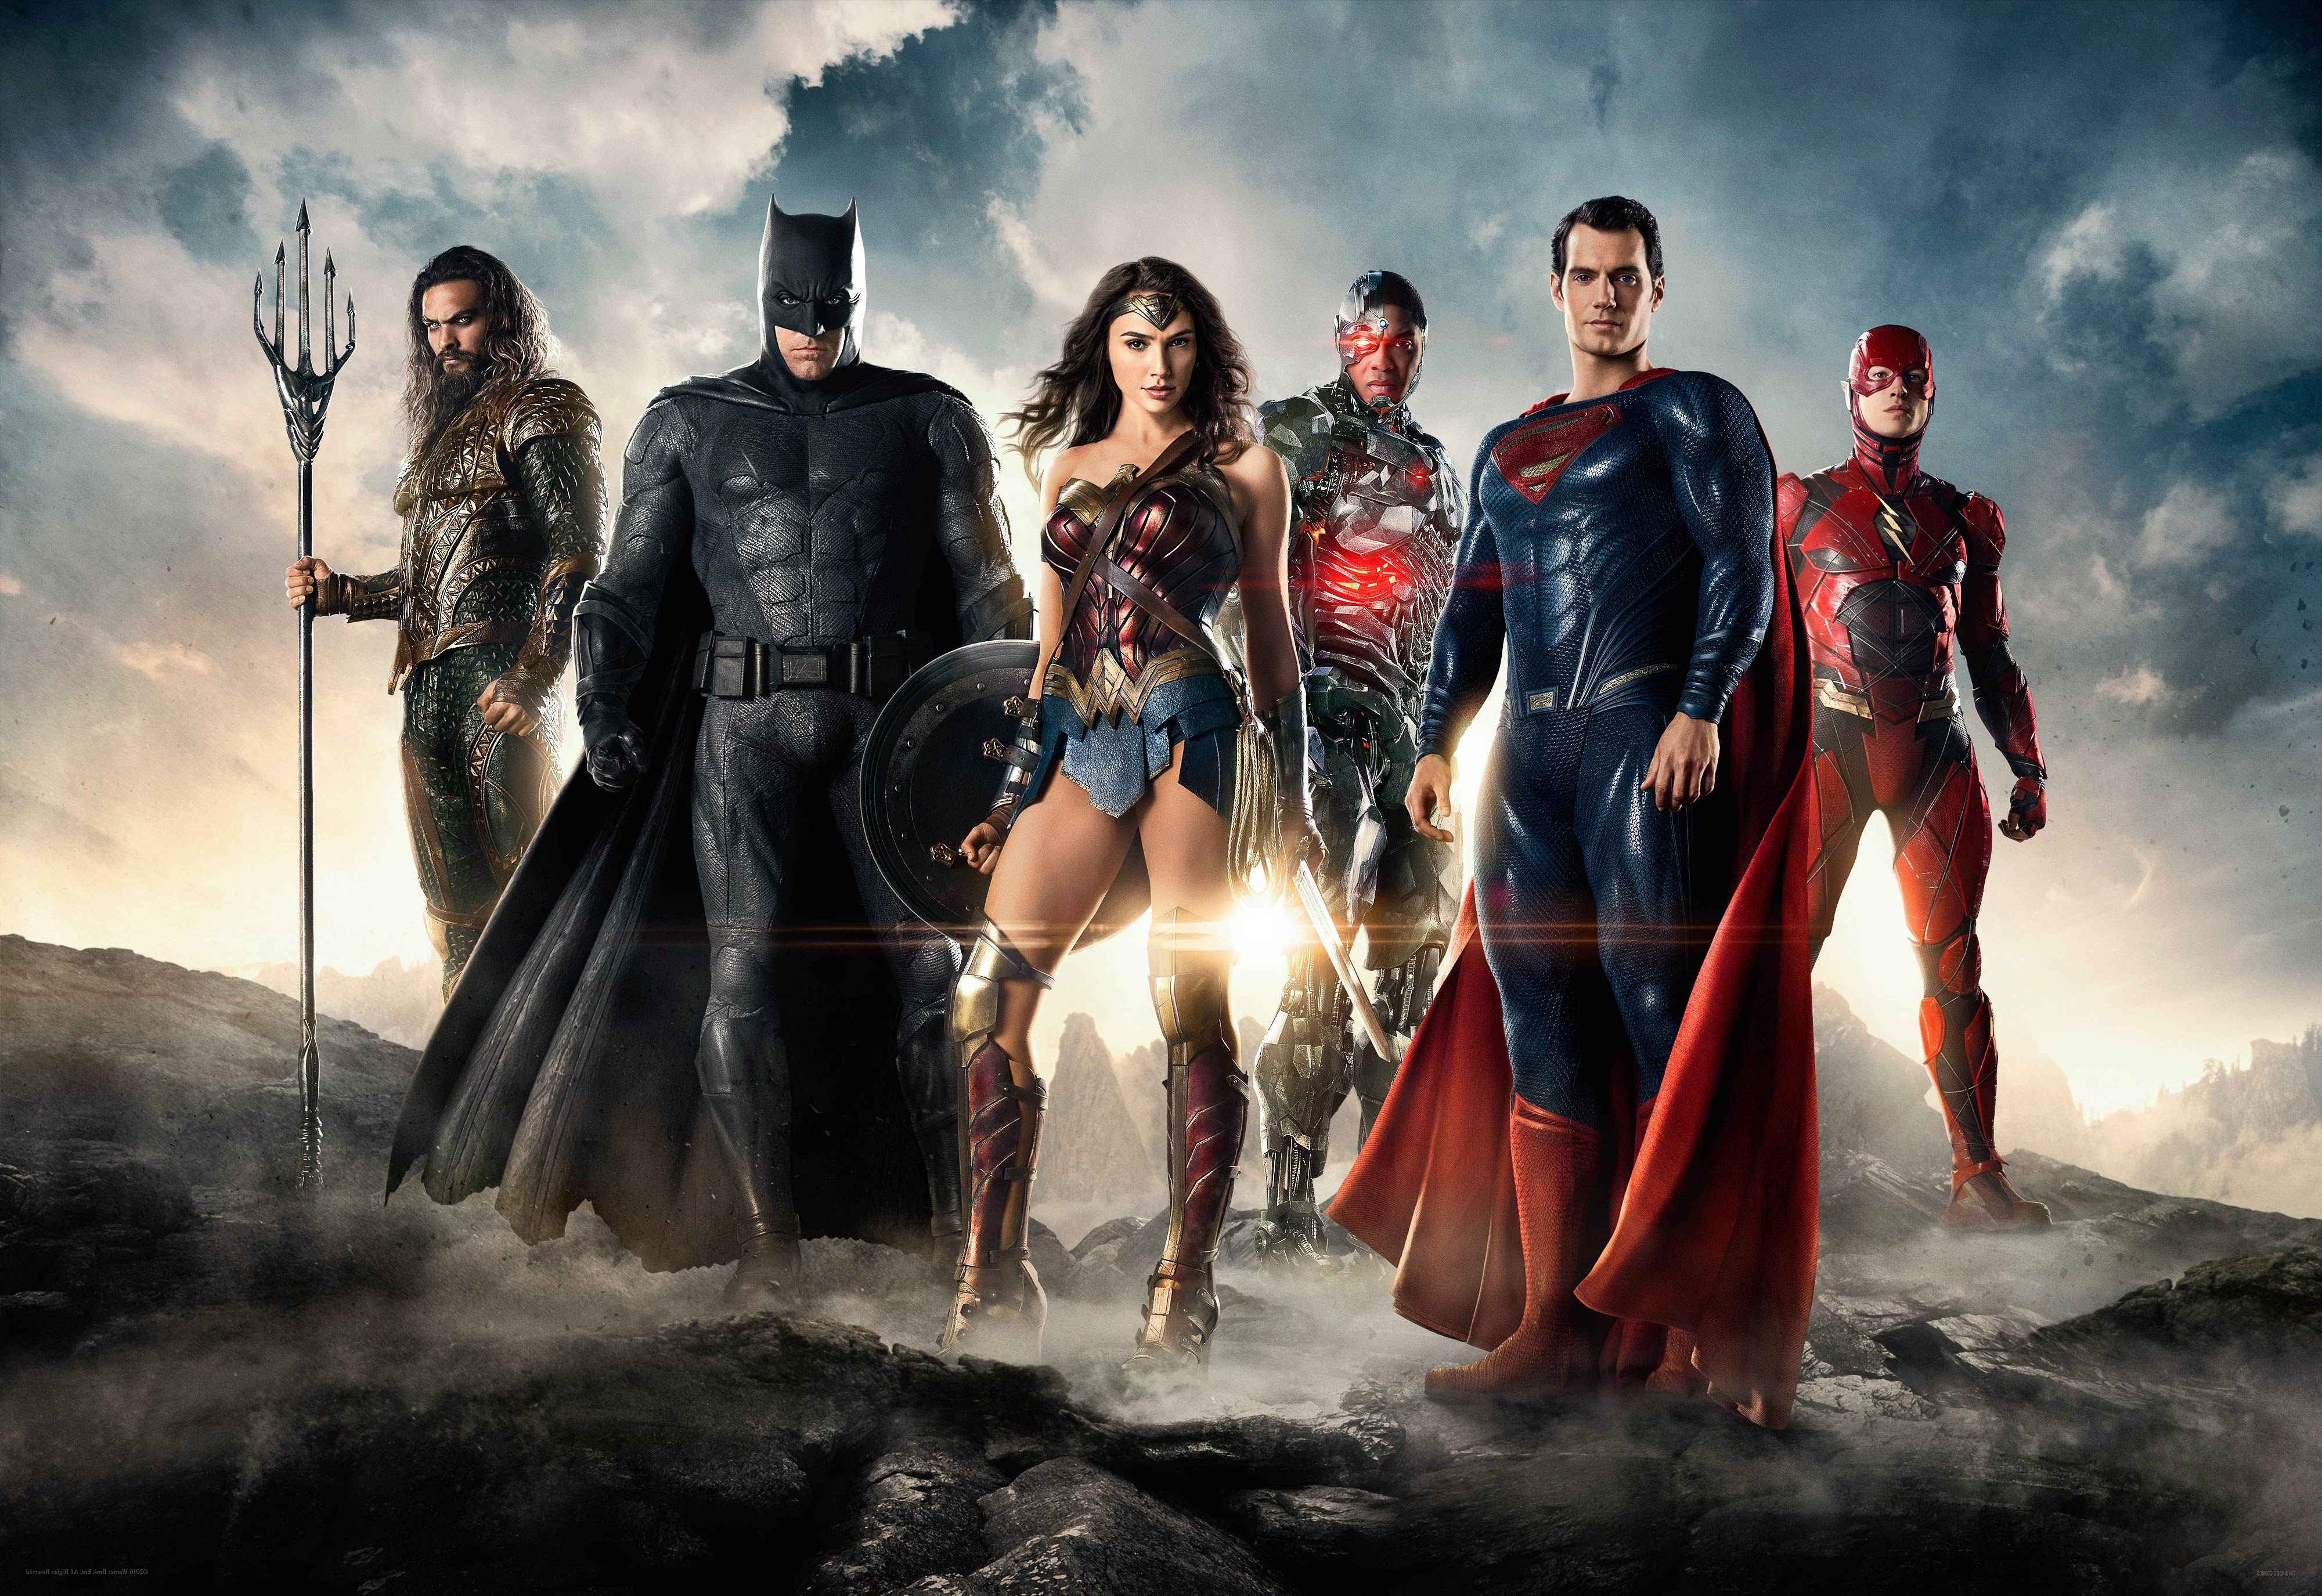 Justice League Movie 2017 Wallpapers, HD Image